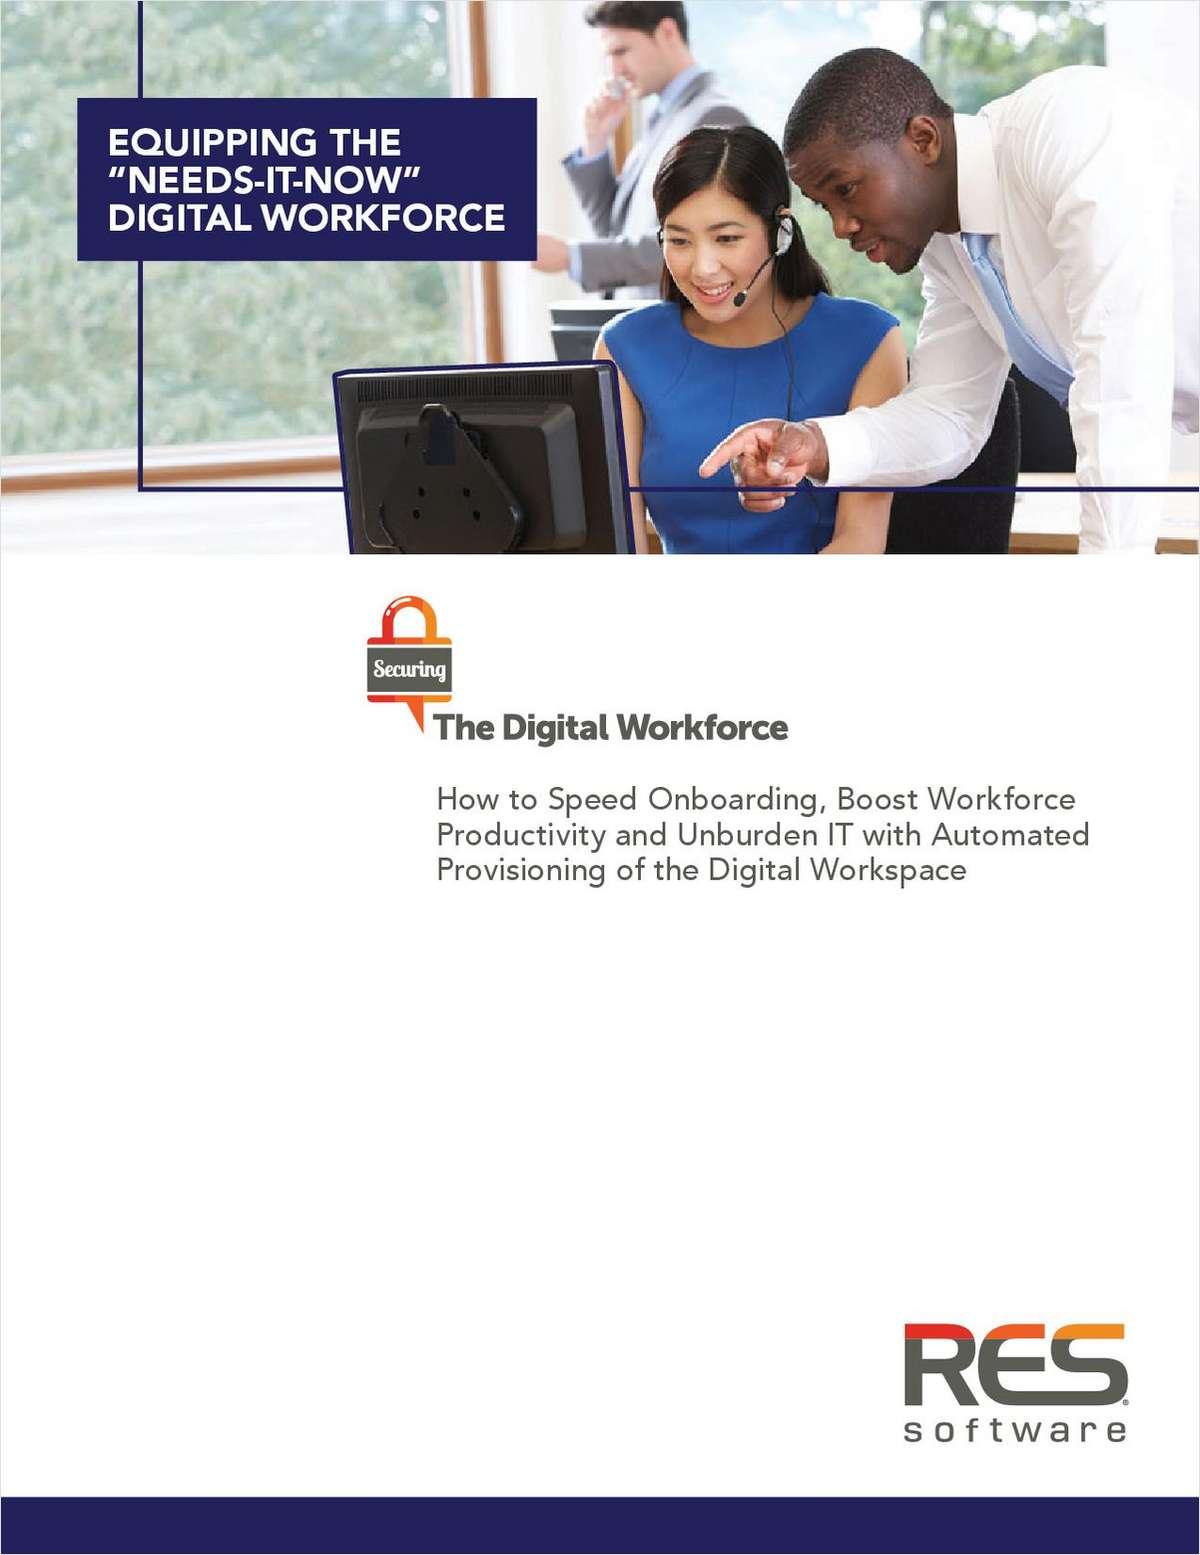 Equipping the Digital Workforce